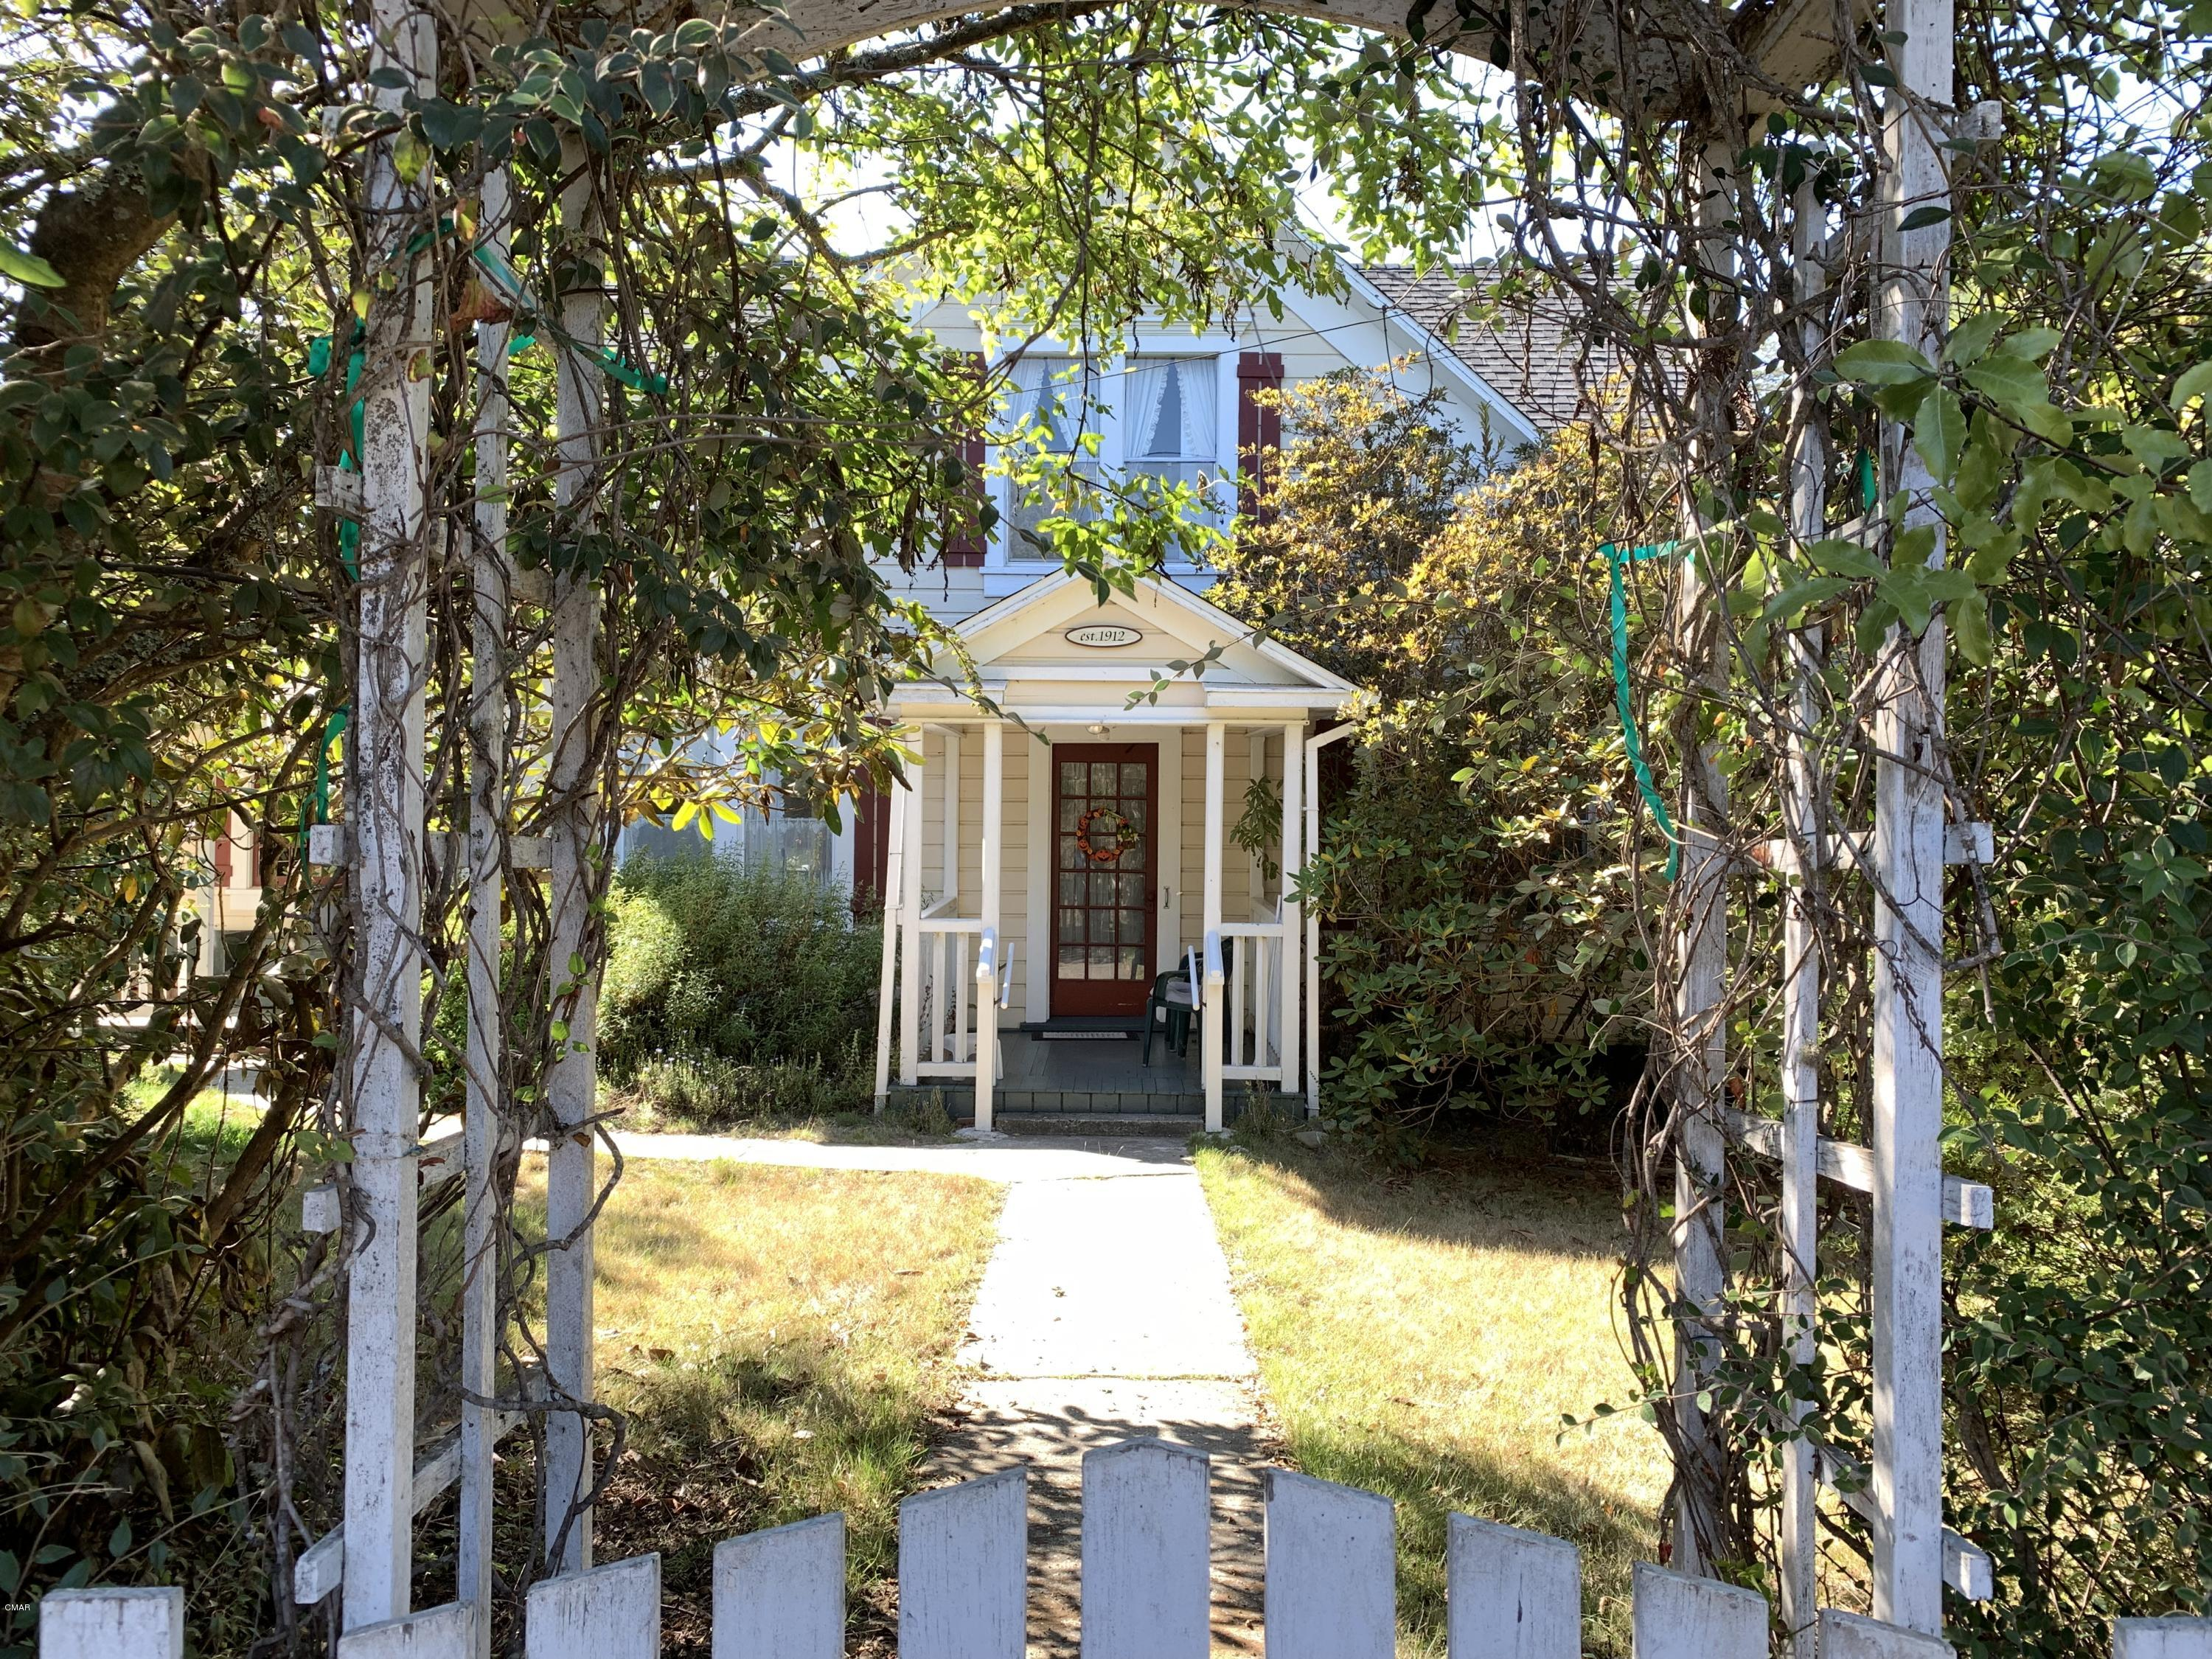 Rare Opportunity to own a charming  country farmhouse on approx. 2.5 acres, about 5 minutes to the lovely coastal town of Fort Bragg.  3 Bedroom, 1 huge bathroom in a beautiful setting. Downstairs bedroom has two closets, upstairs landing has three storage closets! Many outbuildings including a very large barn, detached garage, a shop, a separate art or yoga studio space or detached office or ? This parcel has it all, privacy and room for your all your animals with 2 separate pastures and plenty of room for parking just about anything.  First time on the market in over 50 years, this doesn't come along every day.  Per county records, Original John Hyman Farmhouse.  Start that hobby farm you've been dreaming of, a MUST SEE!